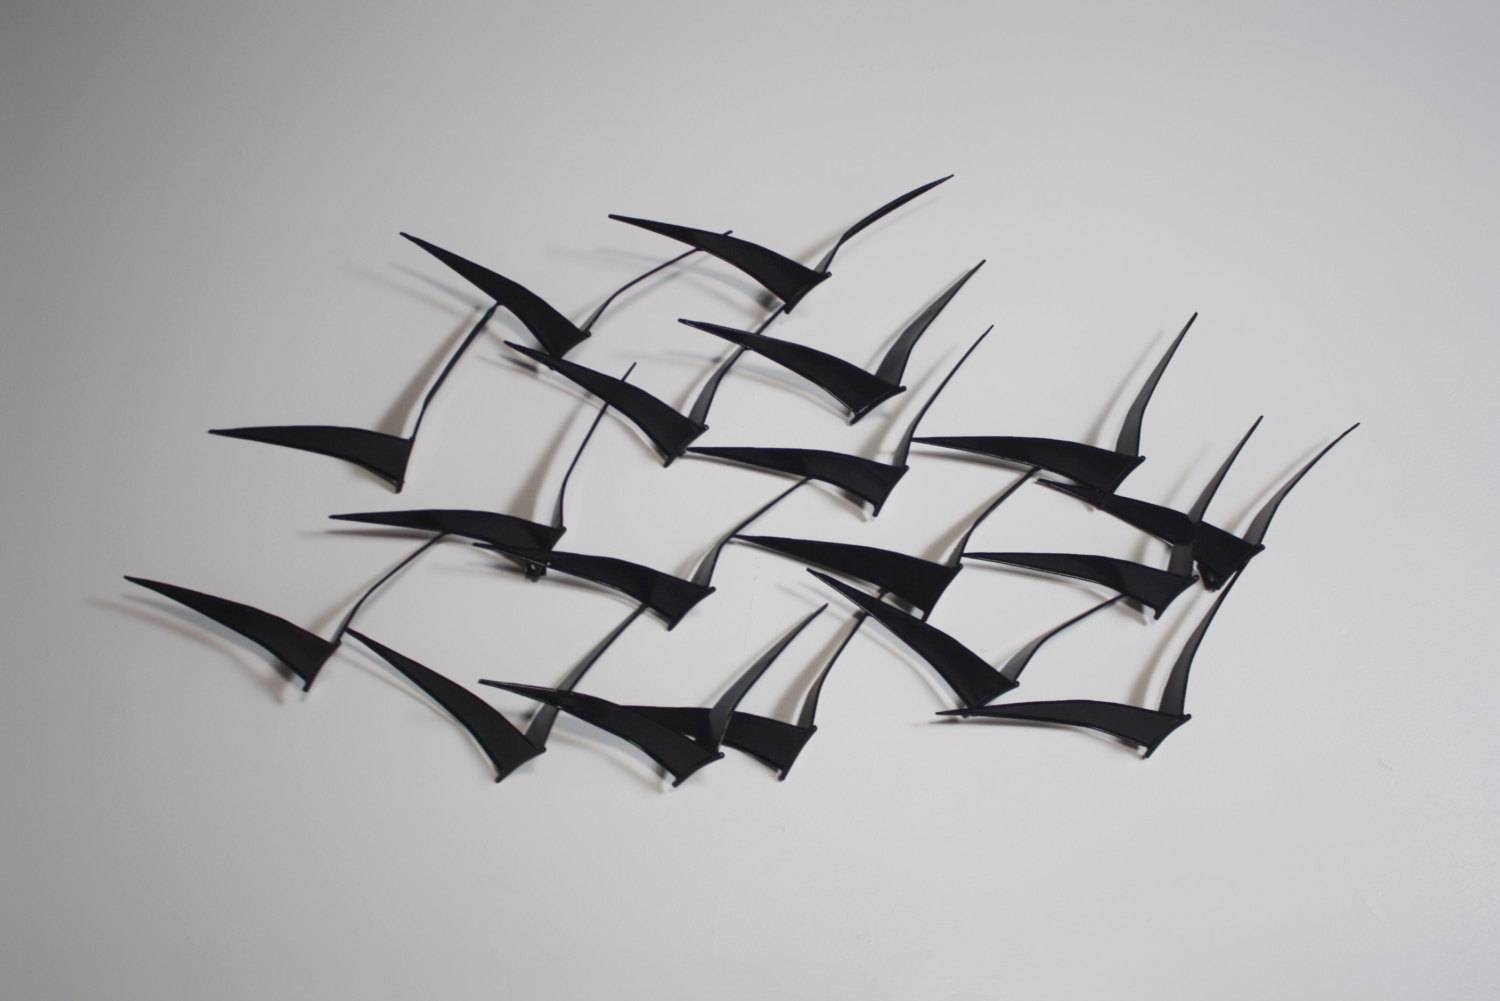 Superb Metal Sculpture Wall Art Birds Birds In Flight Metal Trendy Throughout Latest Flying Birds Metal Wall Art (View 13 of 25)